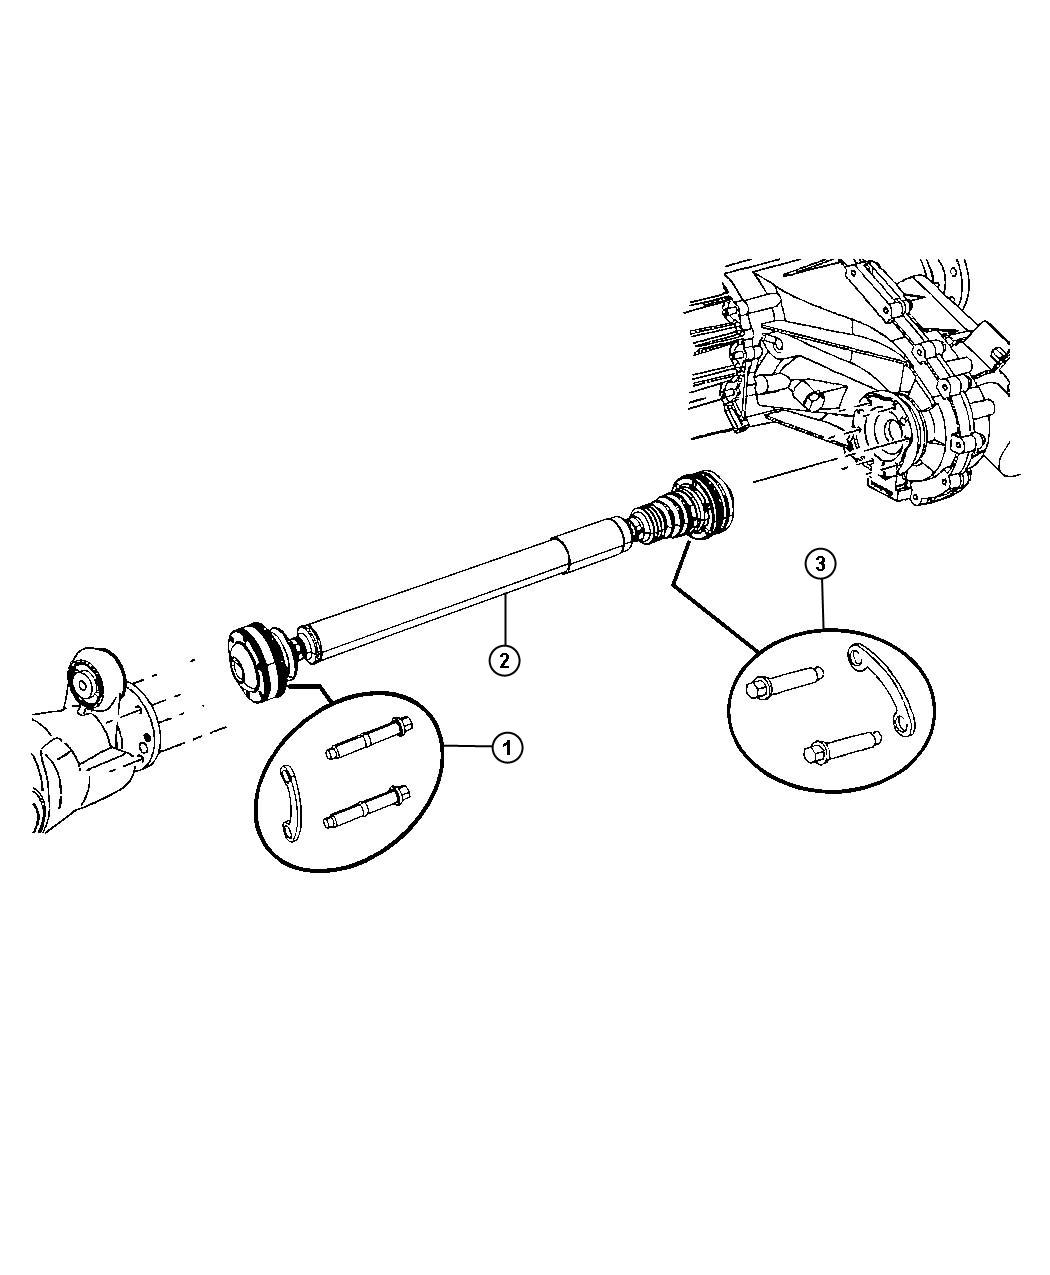 Jeep Liberty Used For  Bolt And Washer  Drive Shaft